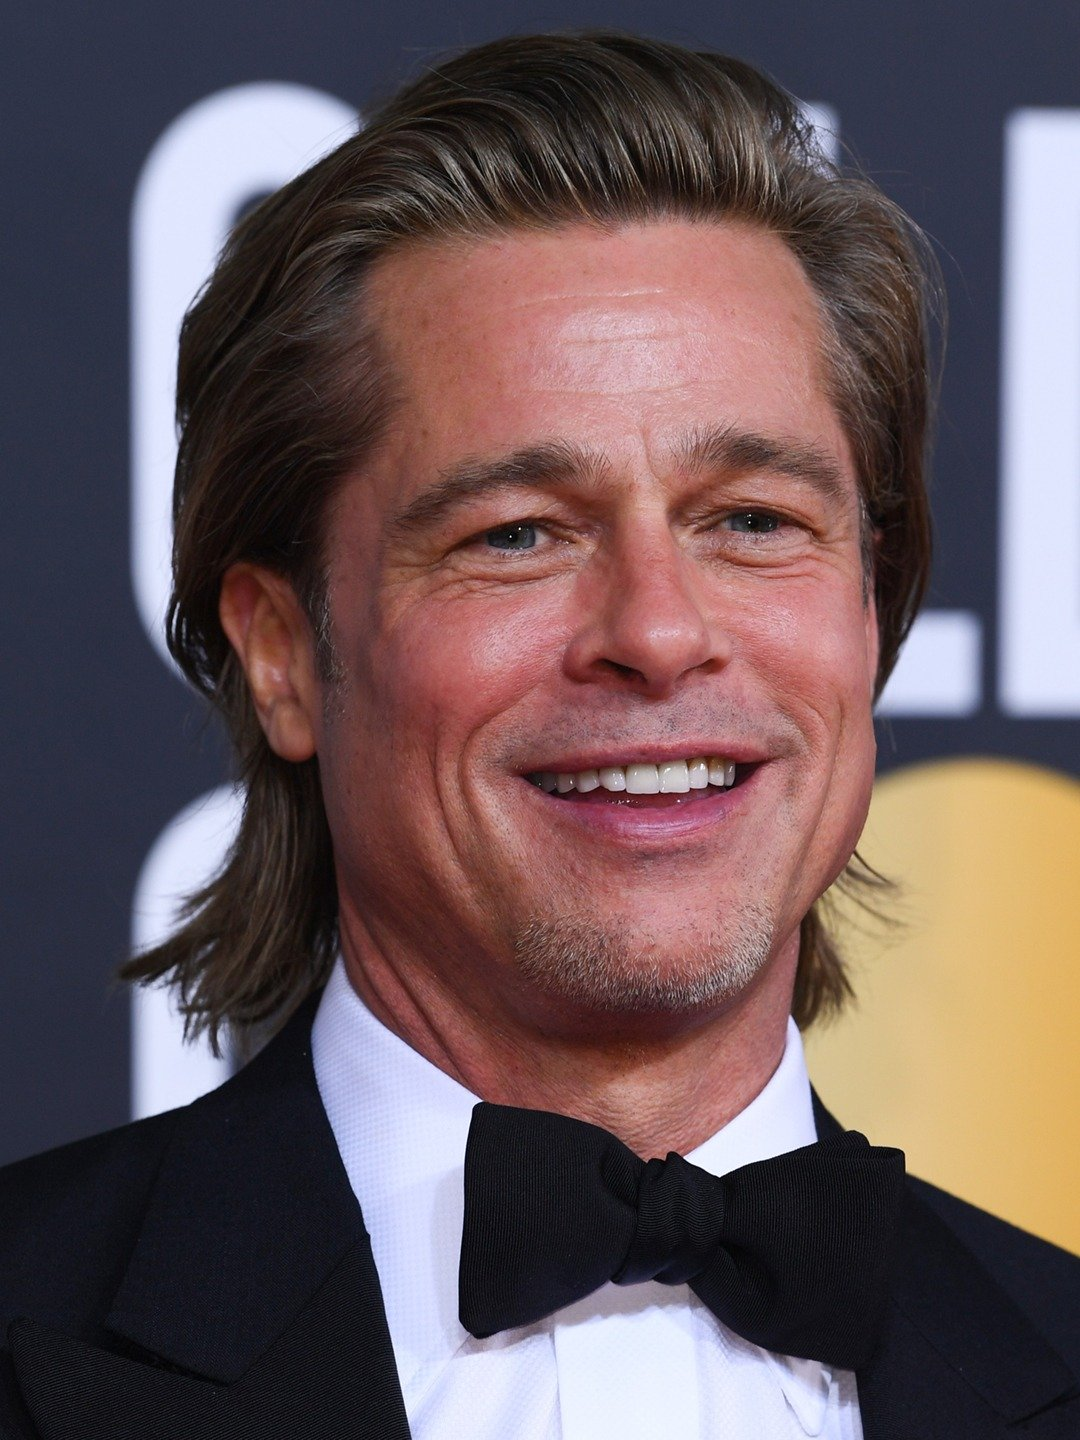 How tall is Brad Pitt?